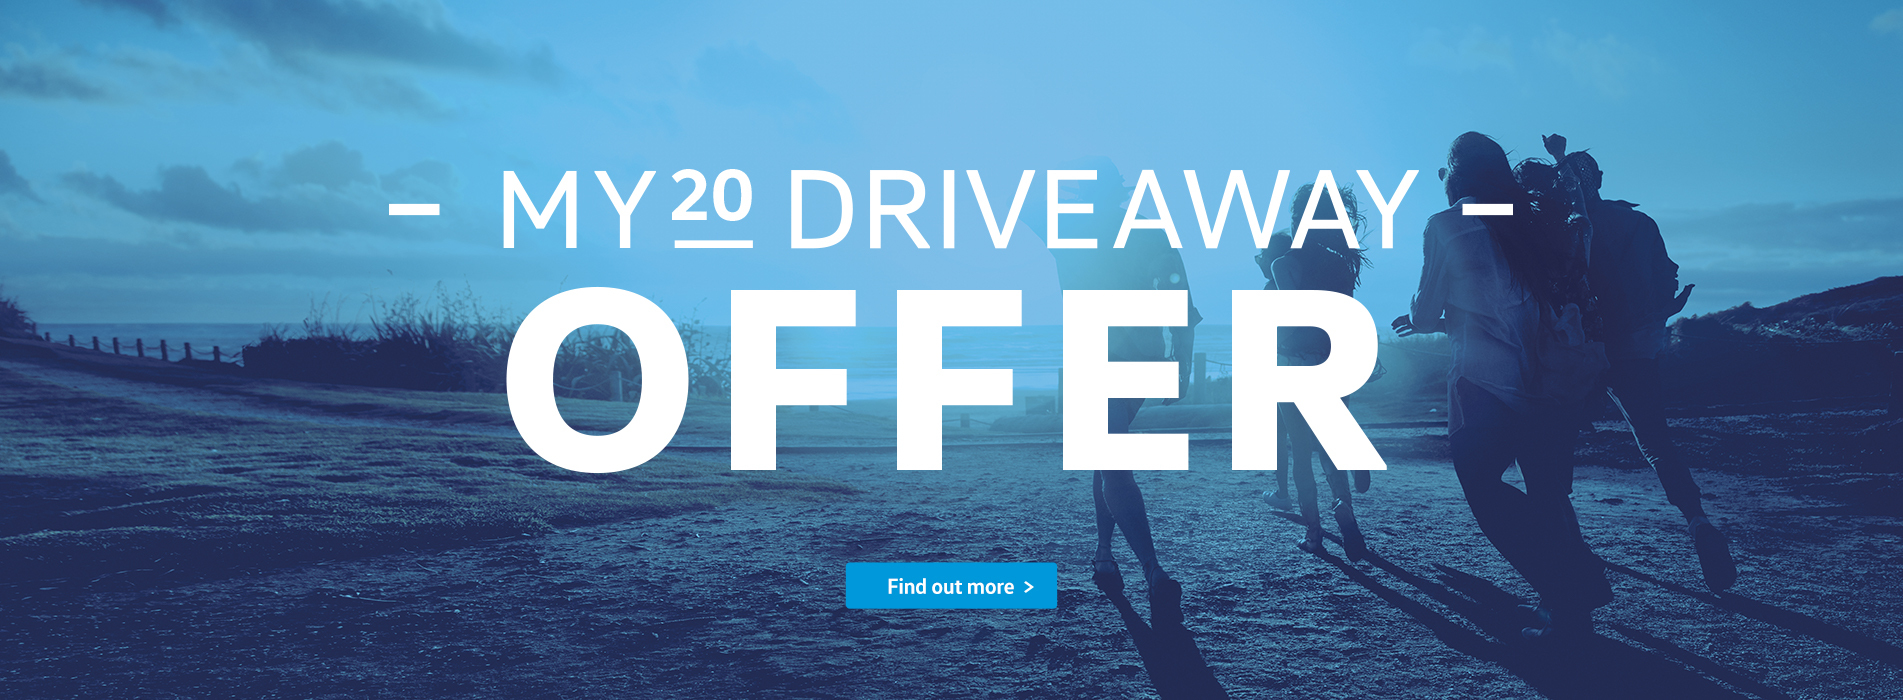 My20 Driveaway Offer